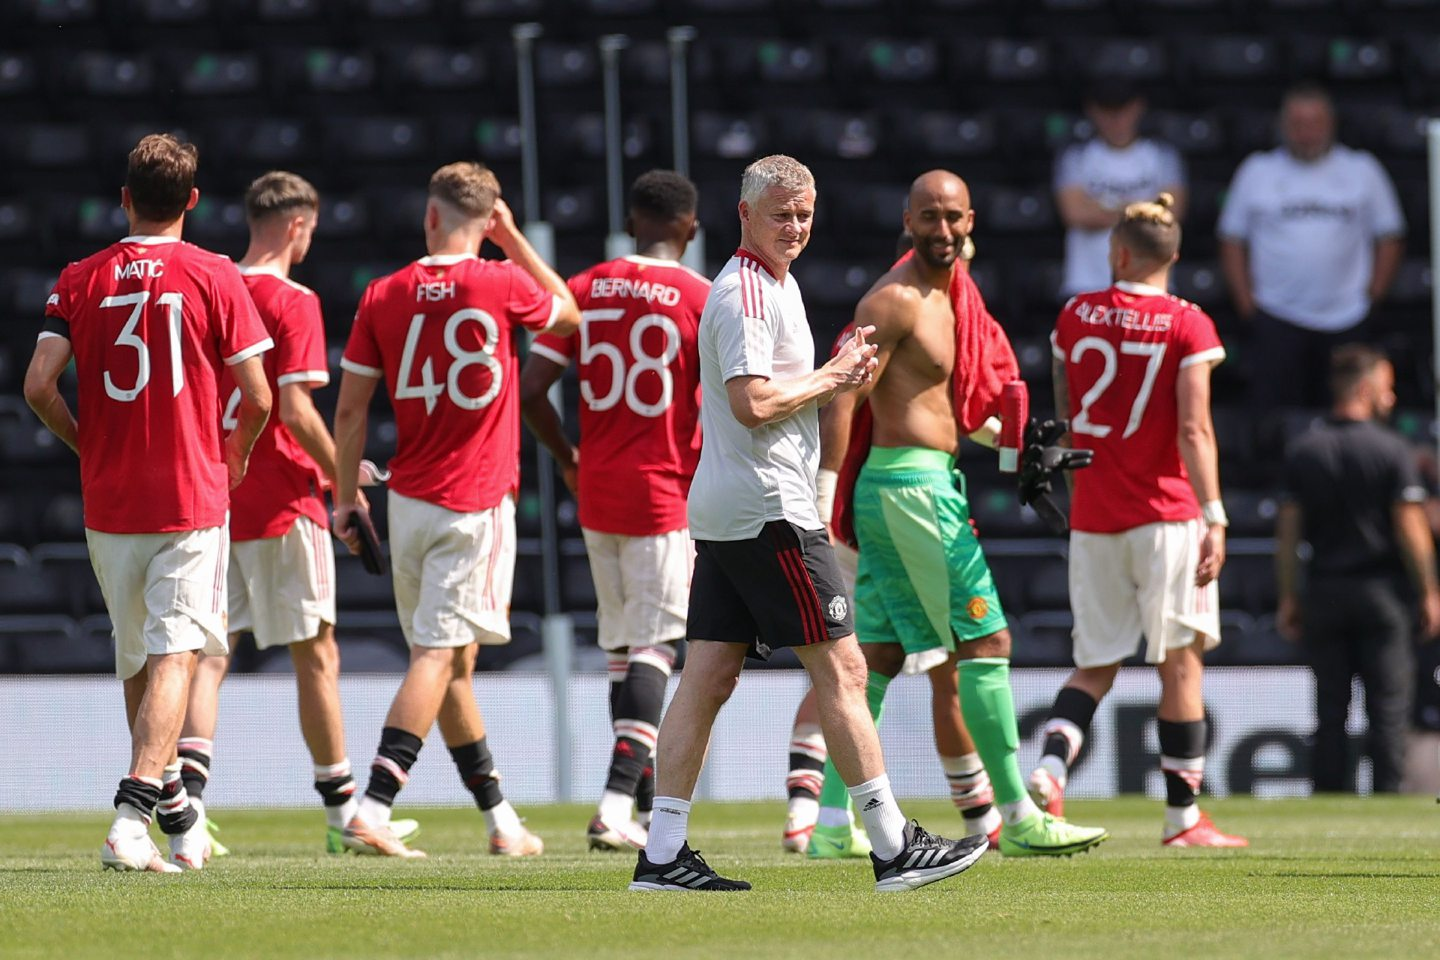 Ole Gunnar Solskjaer and his players after friendly match against Derby at the weekend.